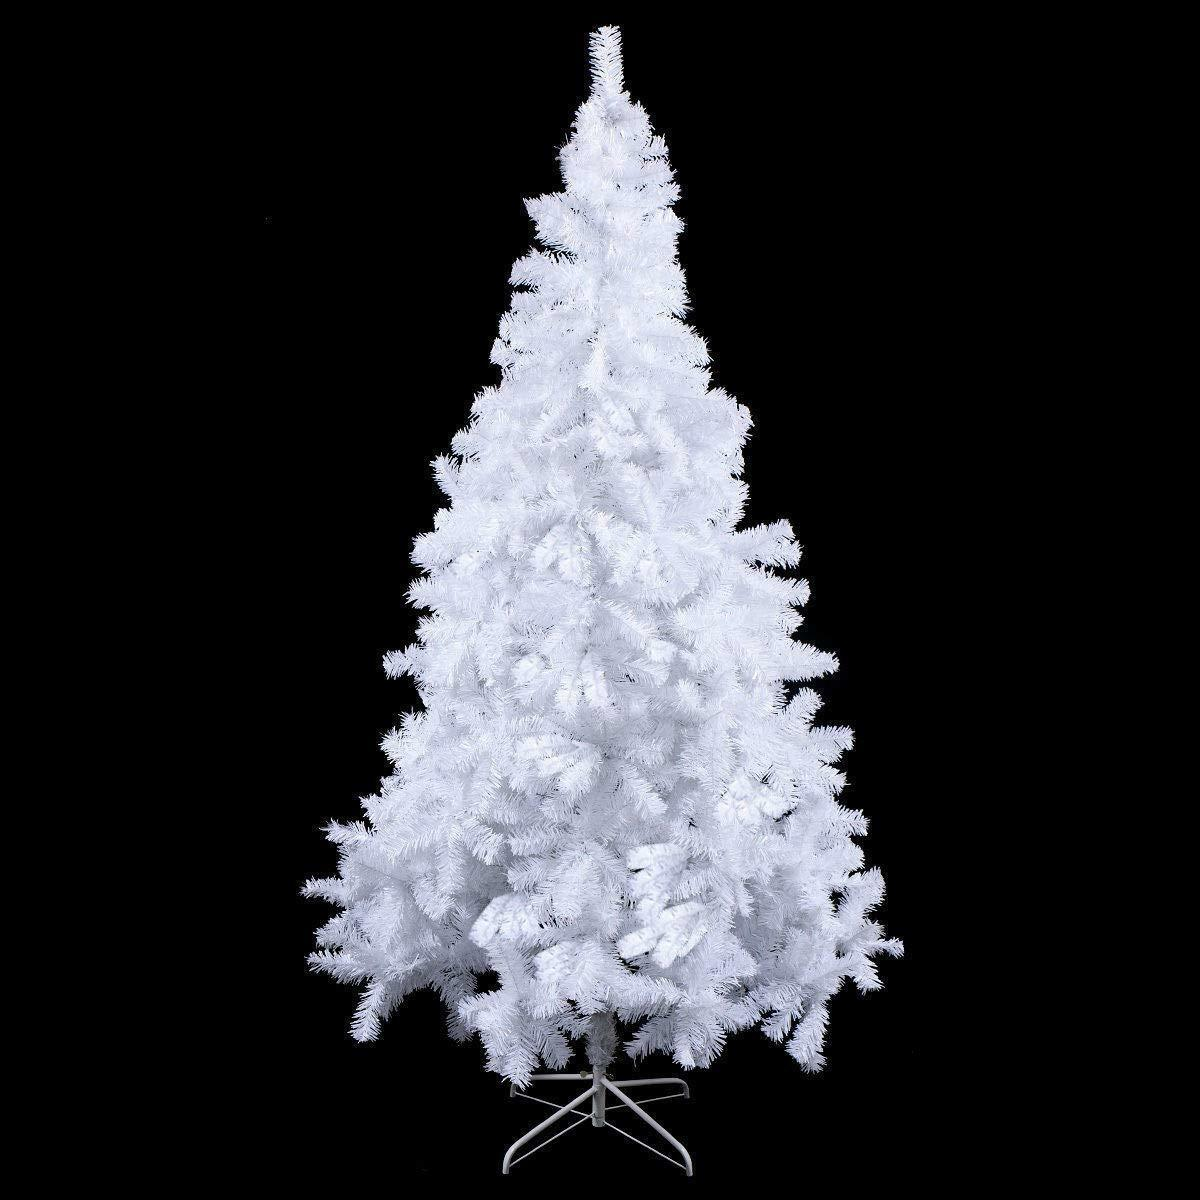 Blanc 7 Ft (environ 2.13 m) artificielle arbre de de arbre Noël, Traditionnel Arbre de Noel Décoration Avec Support 0f59e7